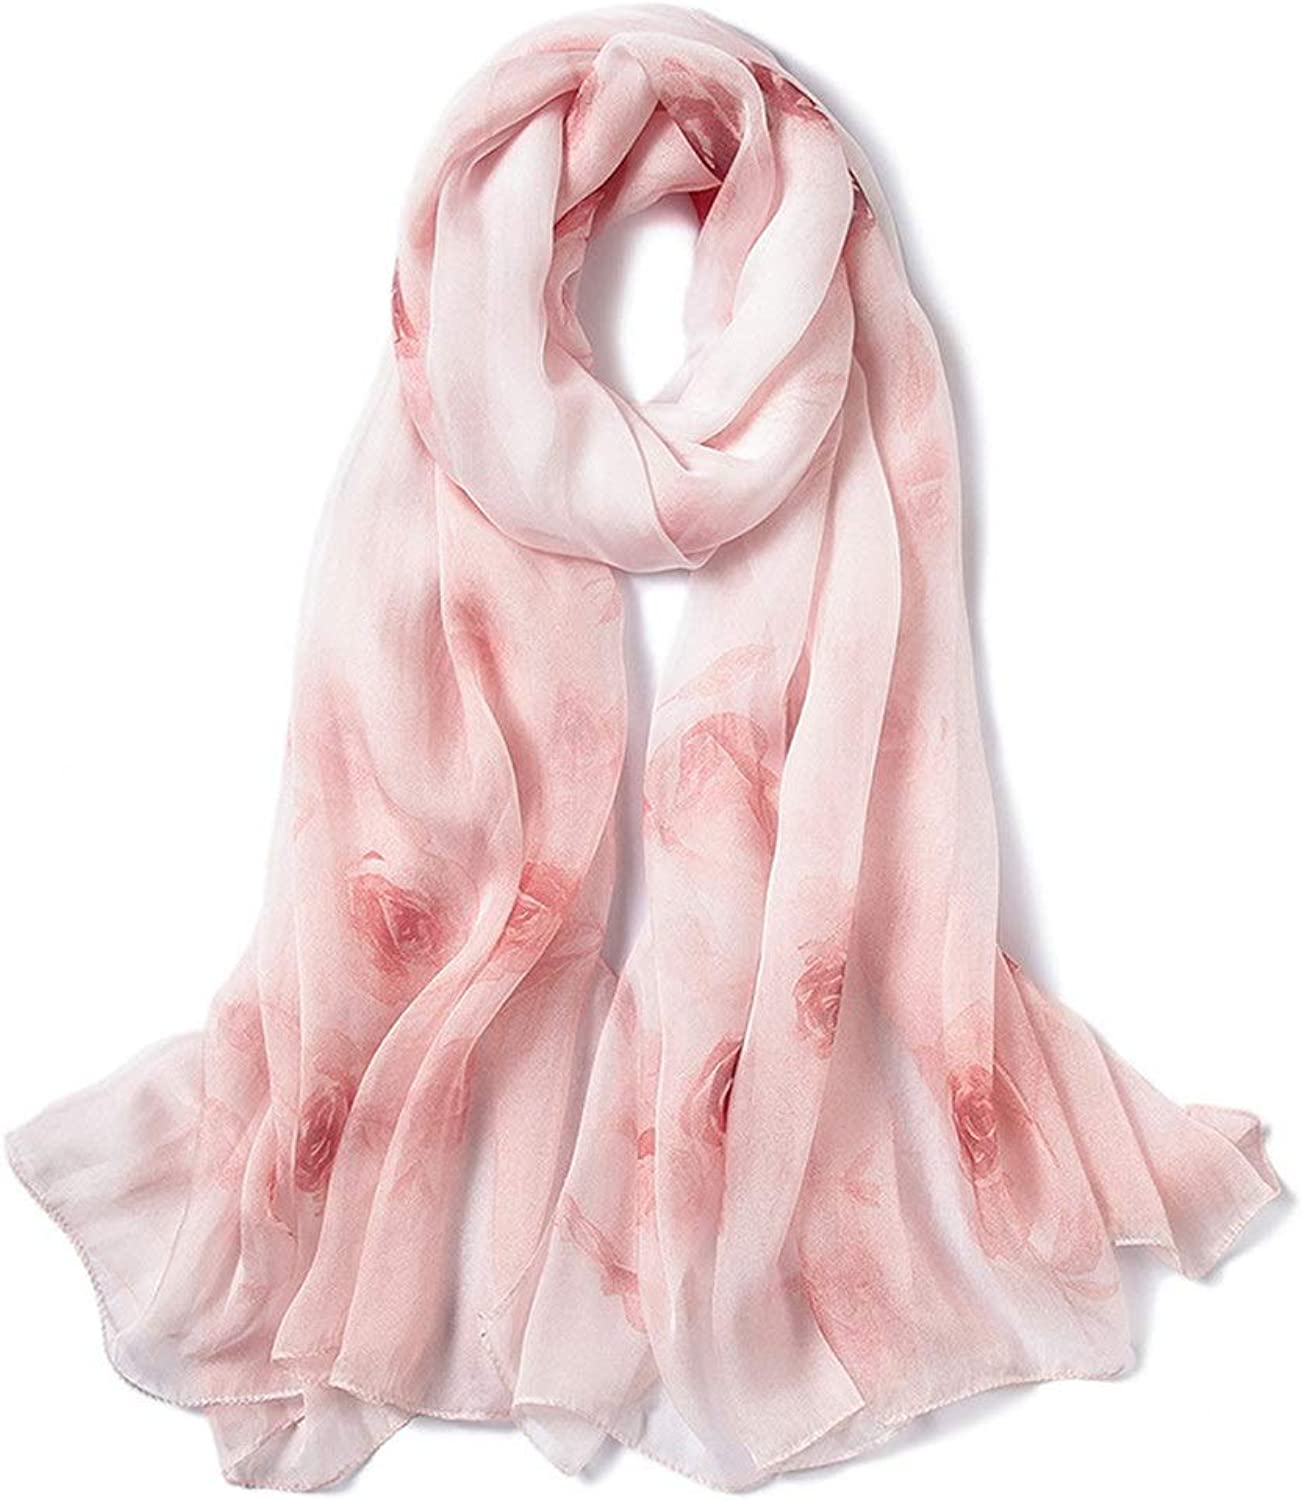 Silk Scarf for Women Lightweight Gradient colors Sunscreen Shawls for Lady Silk (color   4, Size   175cm110cm)